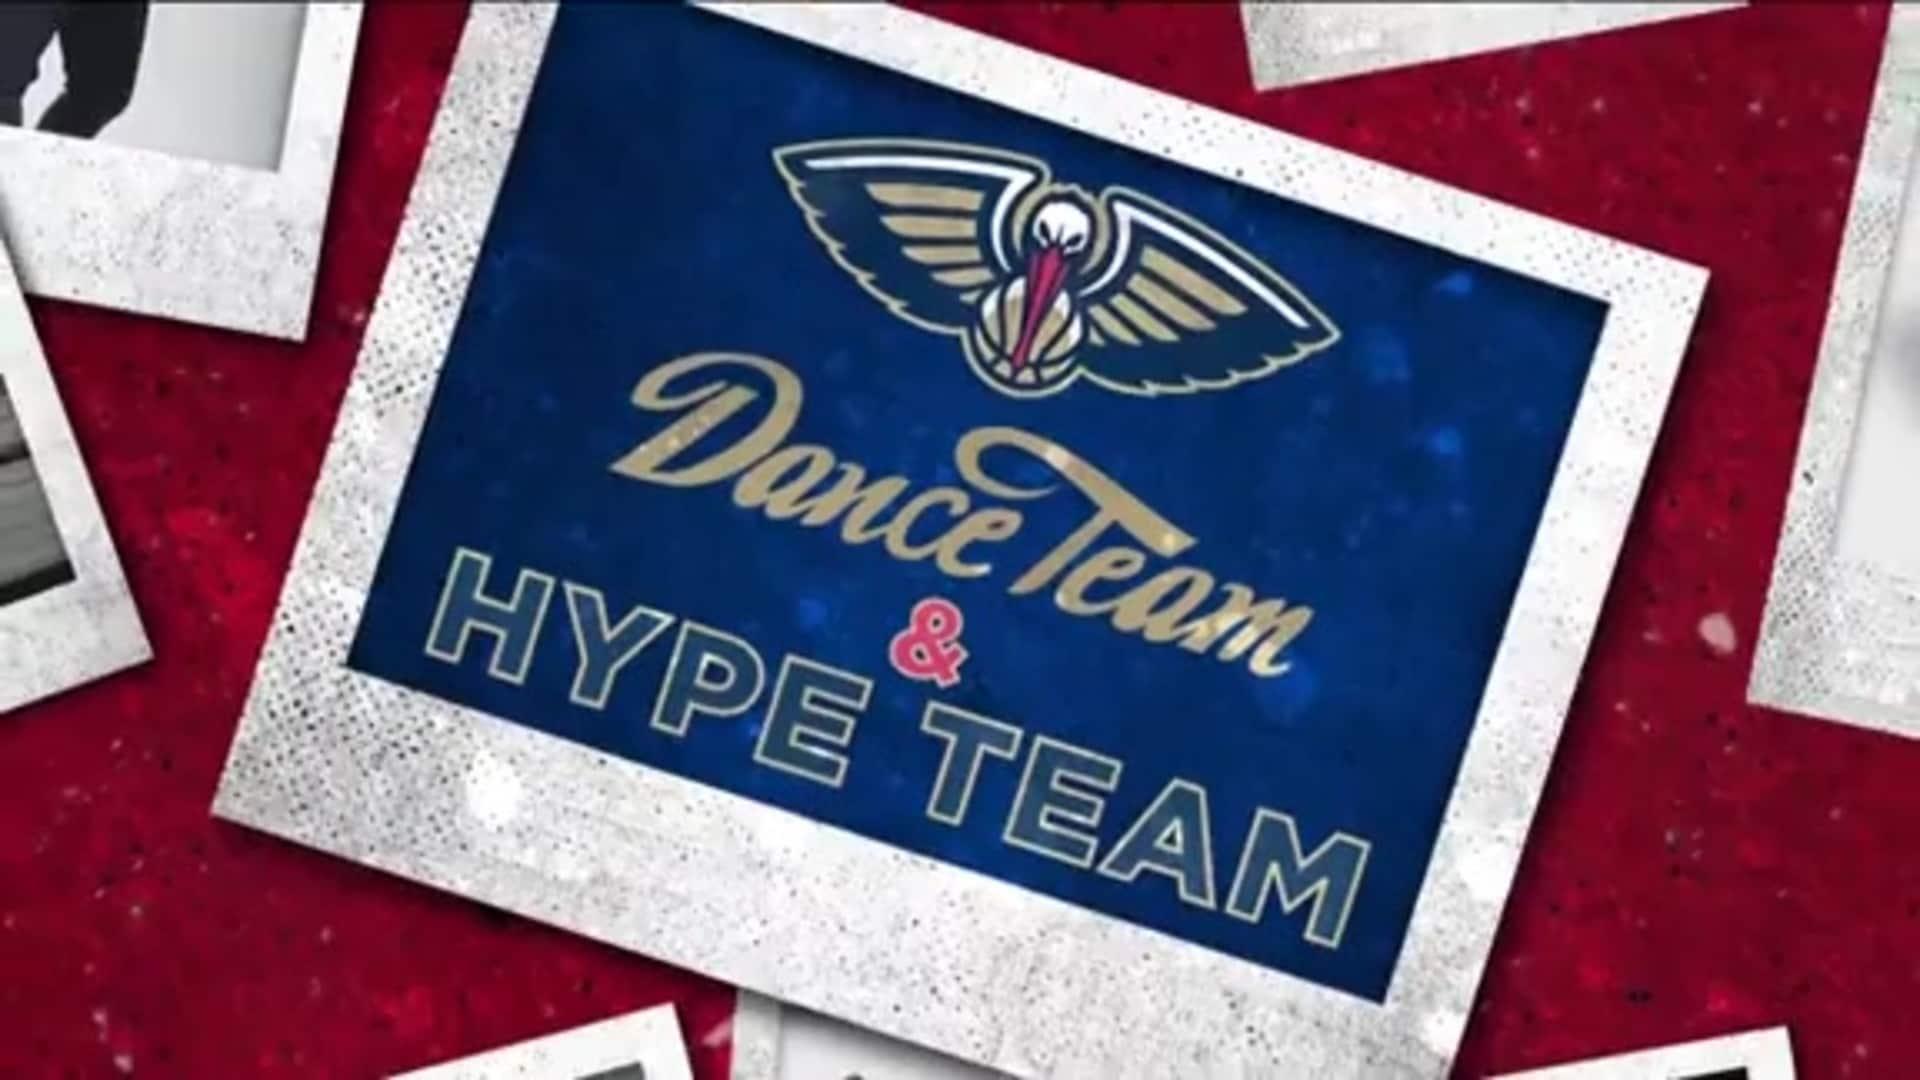 Entertainment: Pelicans Dance & Hype Team 2nd quarter performance - March 6 vs. Miami Heat